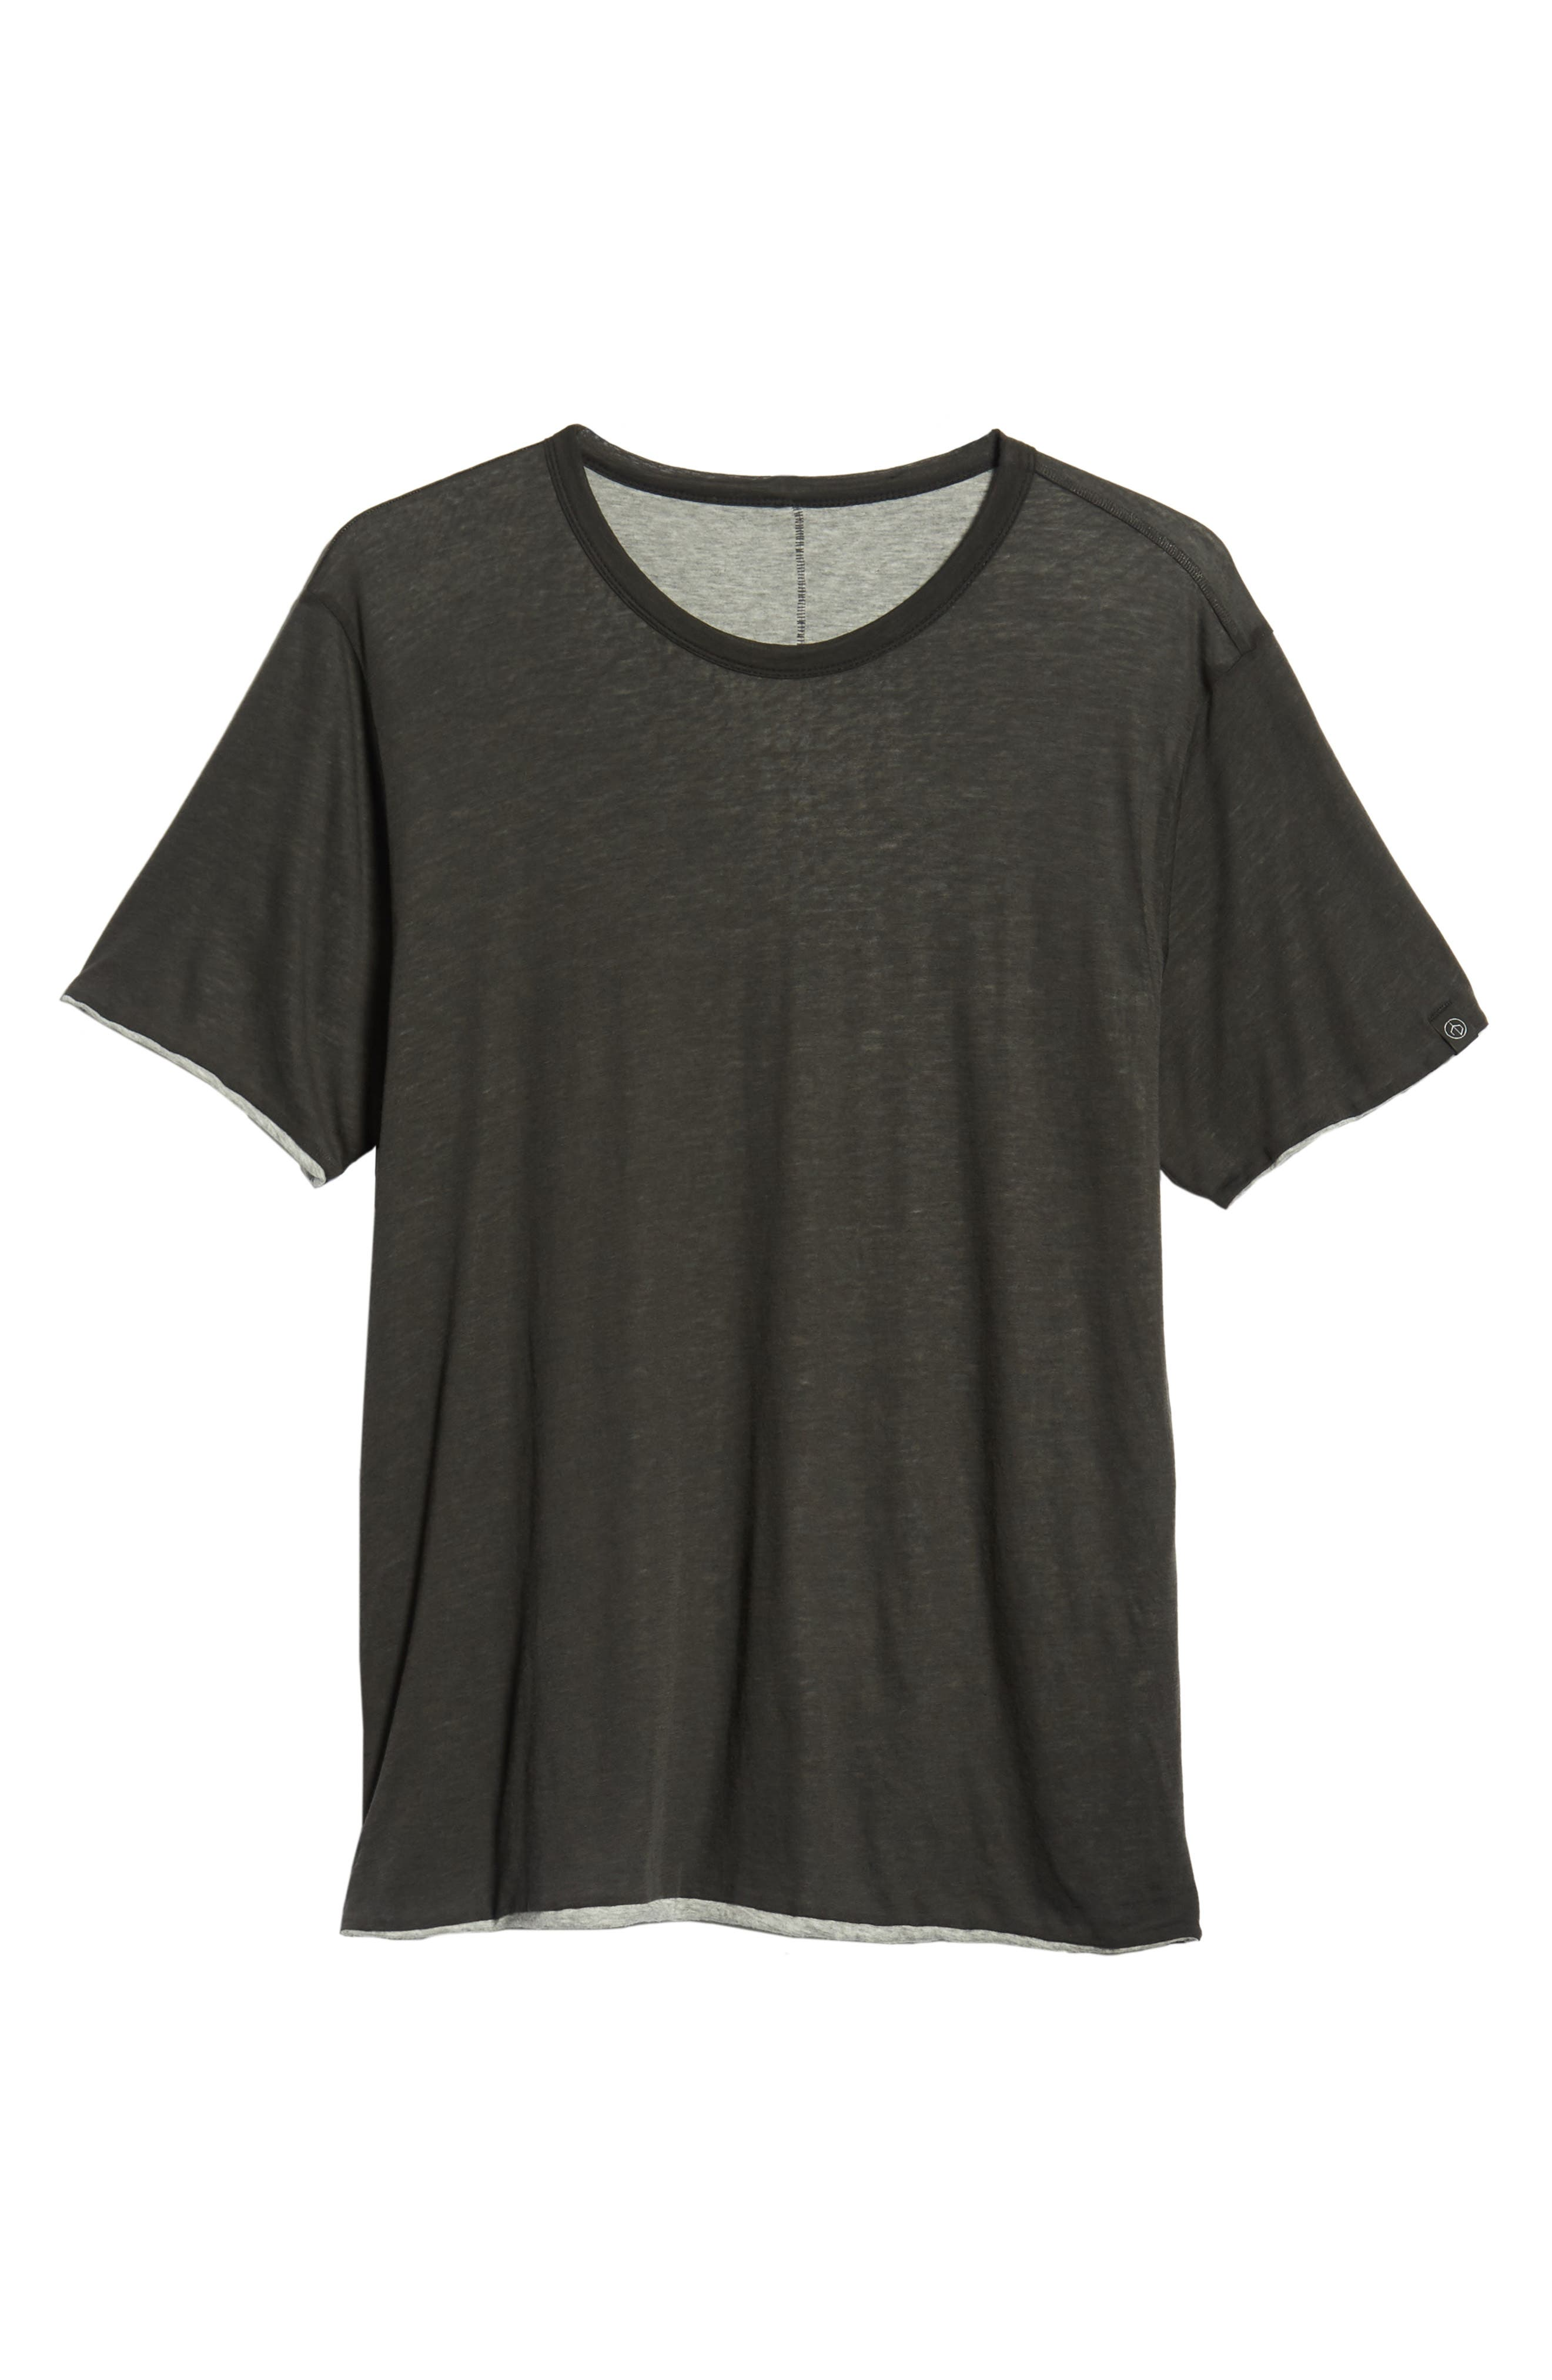 Reversible T-Shirt,                             Alternate thumbnail 6, color,                             IVORY/ GREY